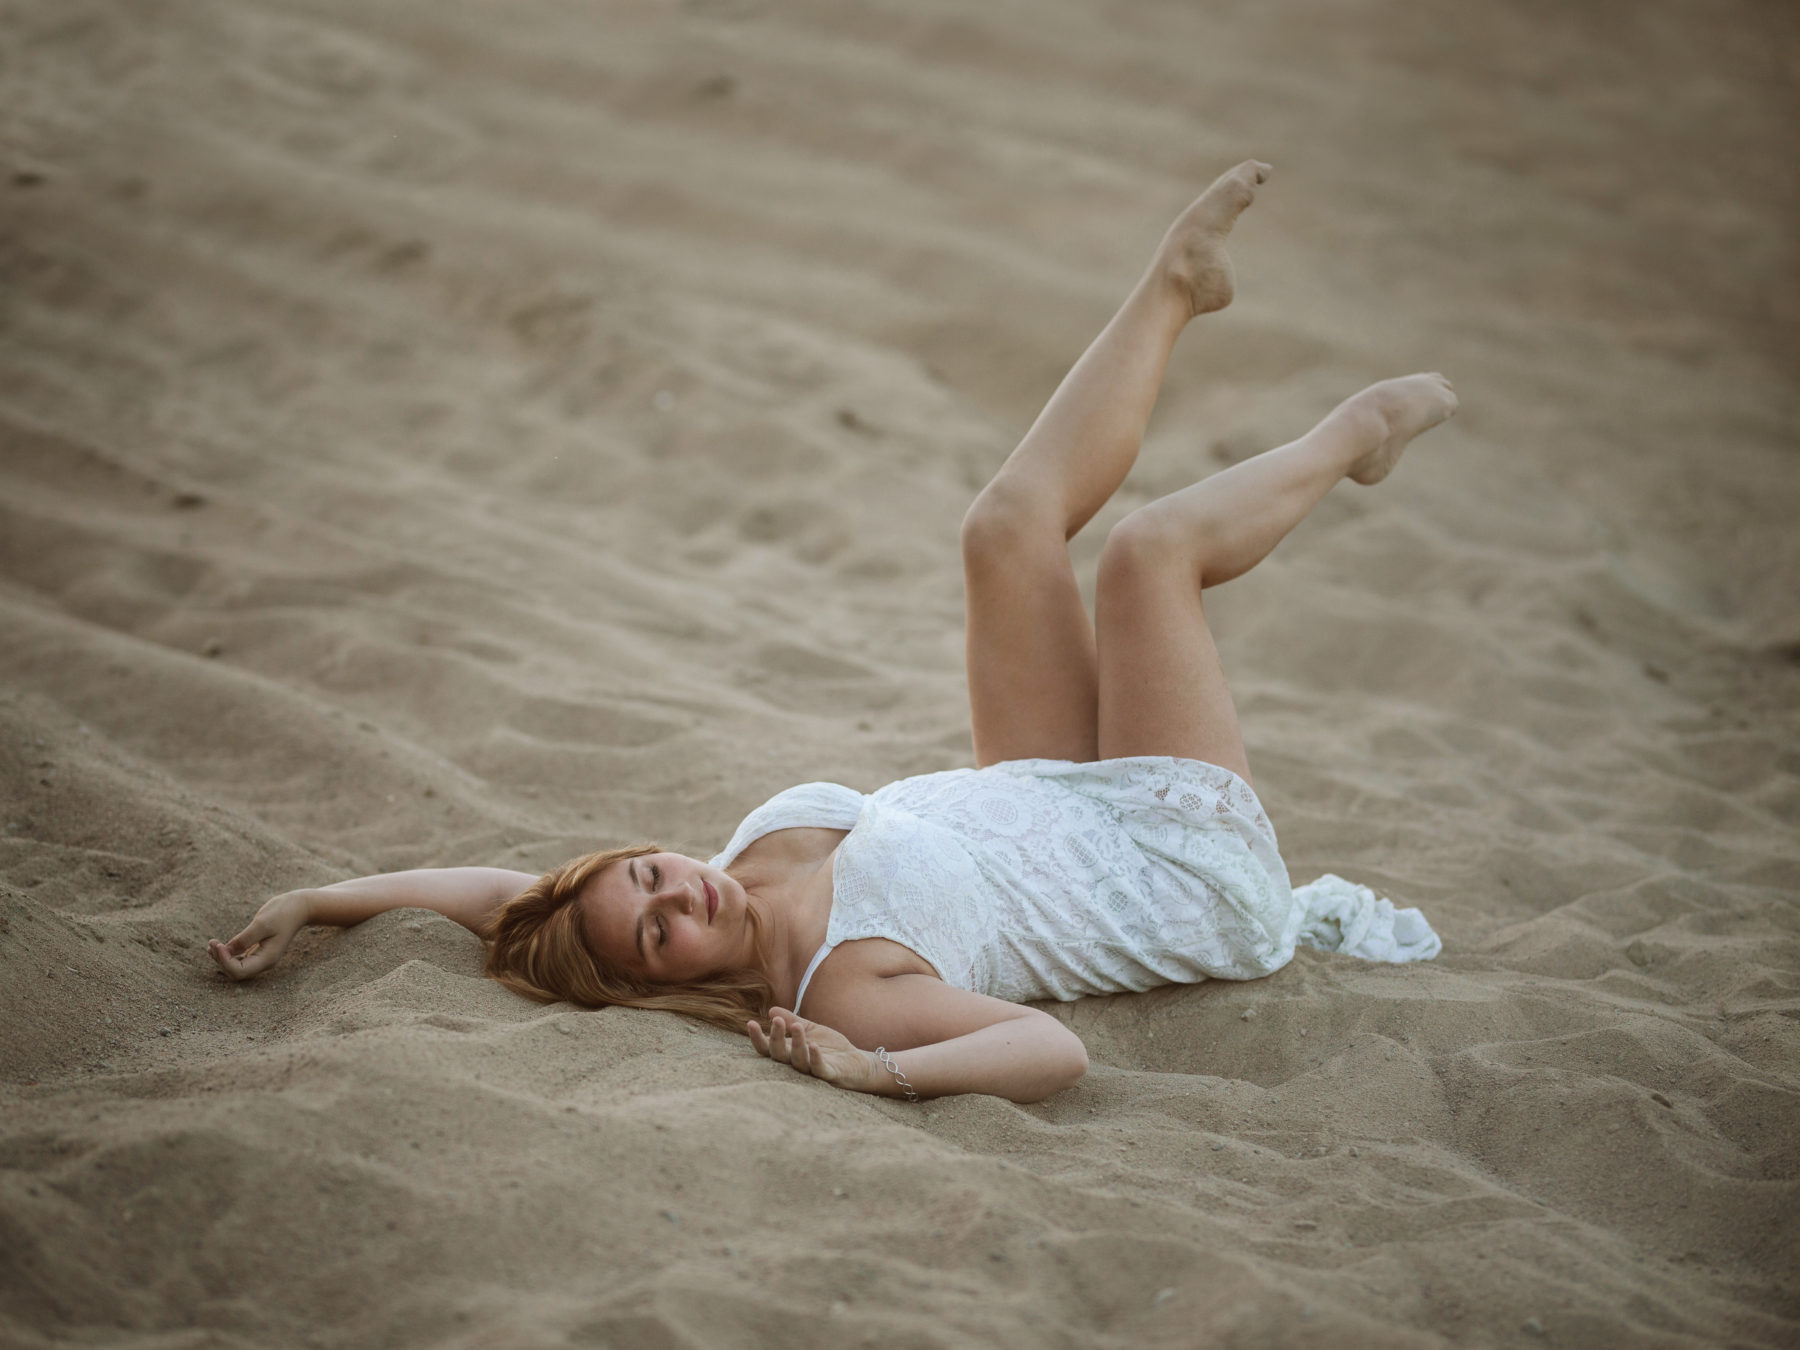 photoshoot in the sand